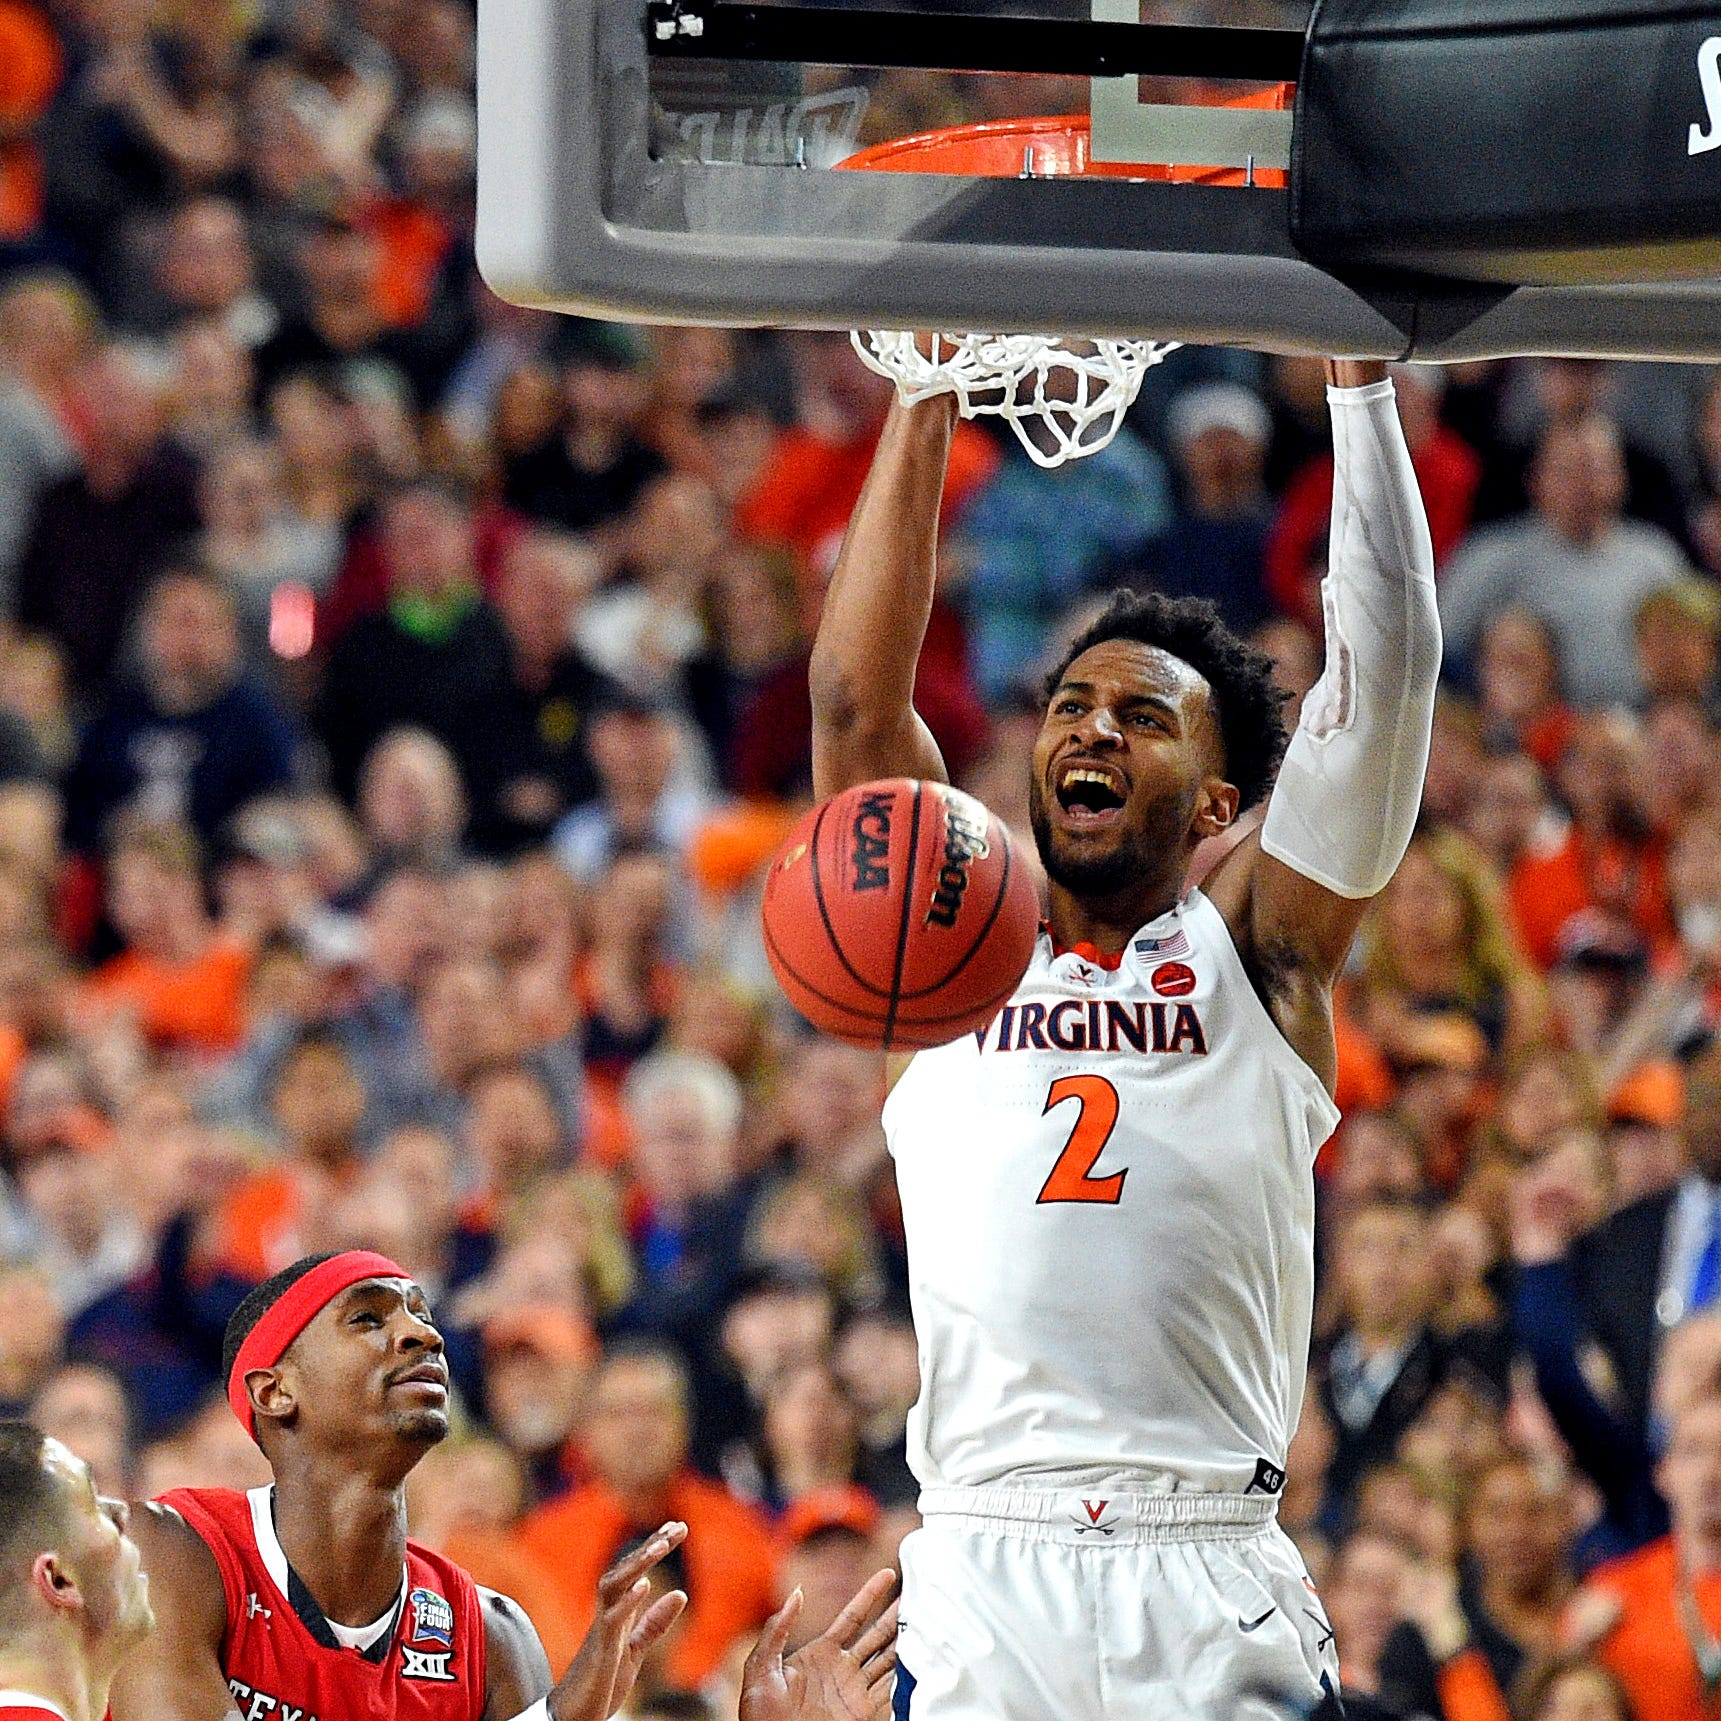 NCAA Basketball Championship 2019: Who are the referees for Virginia vs. Texas Tech game?